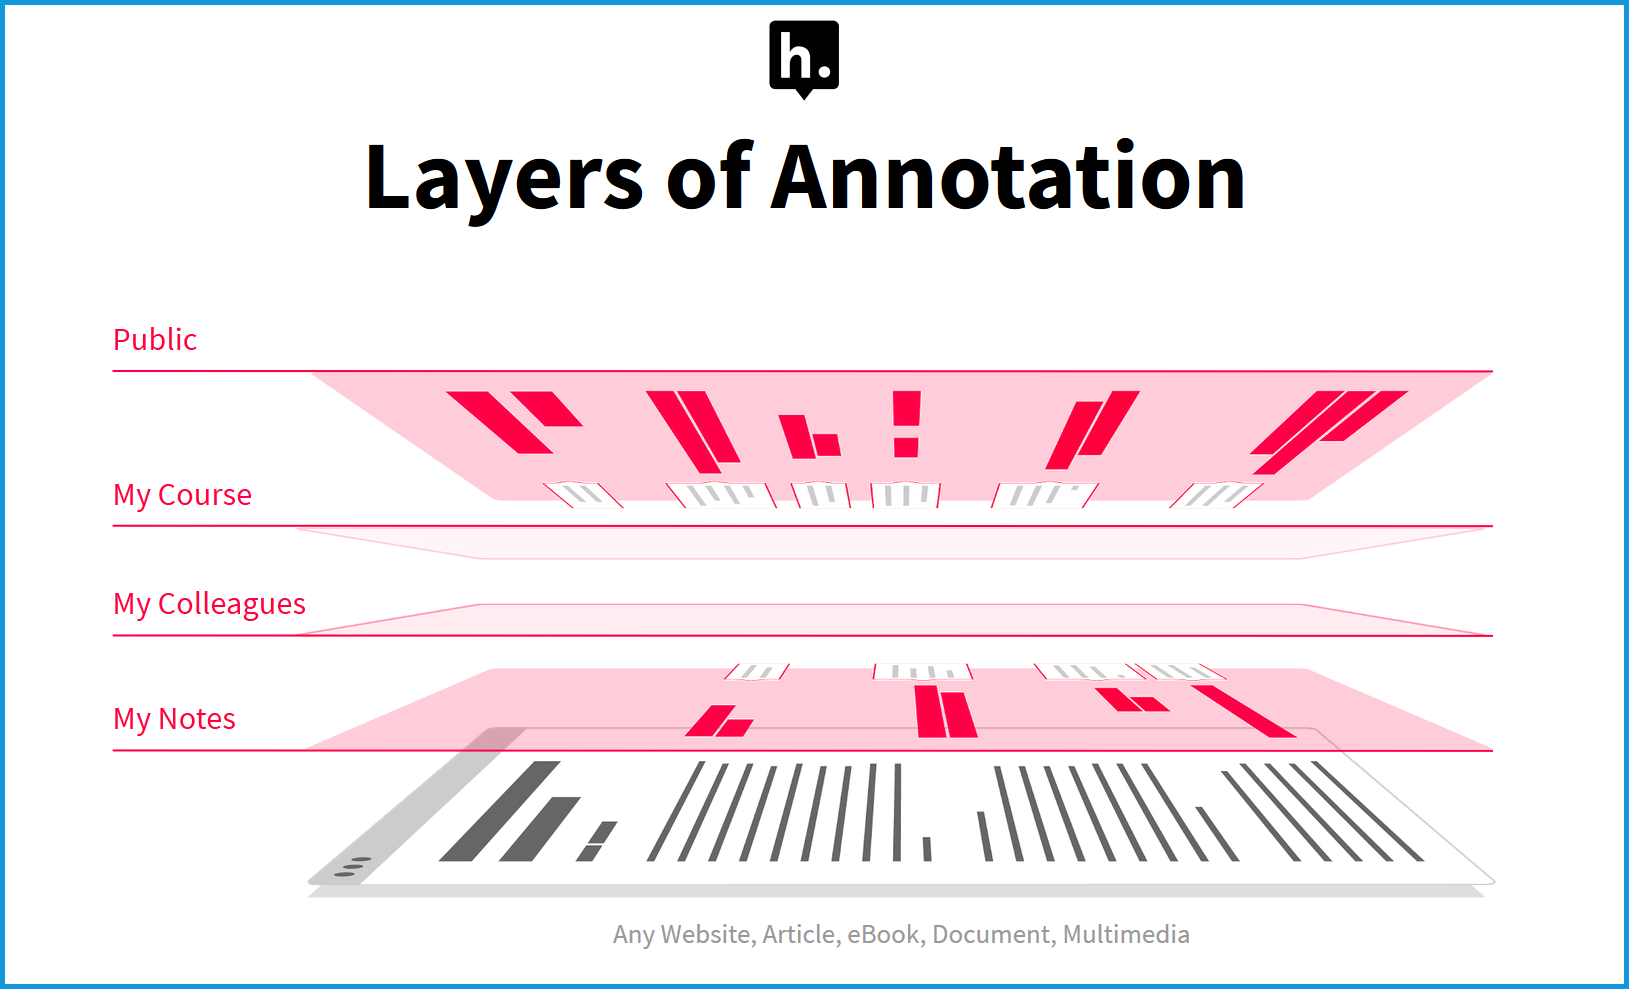 This pictures shows multiple layers of annotations that are possible when using the web annotationtool Hypothesis